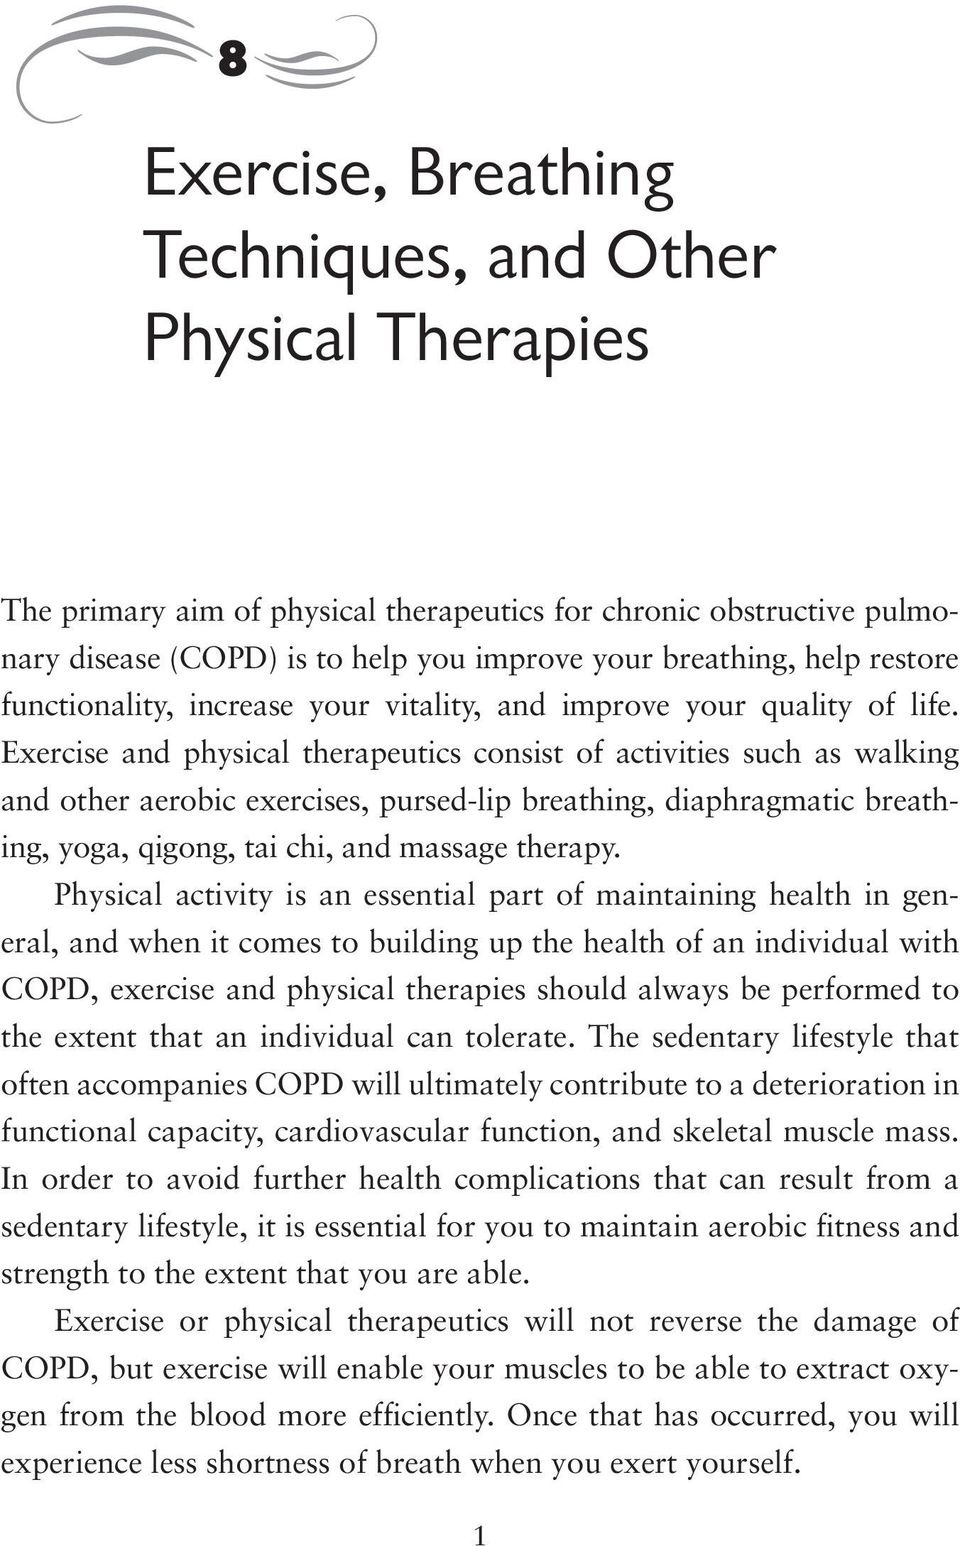 Exercise and physical therapeutics consist of activities such as walking and other aerobic exercises, pursed-lip breathing, diaphragmatic breathing, yoga, qigong, tai chi, and massage therapy.